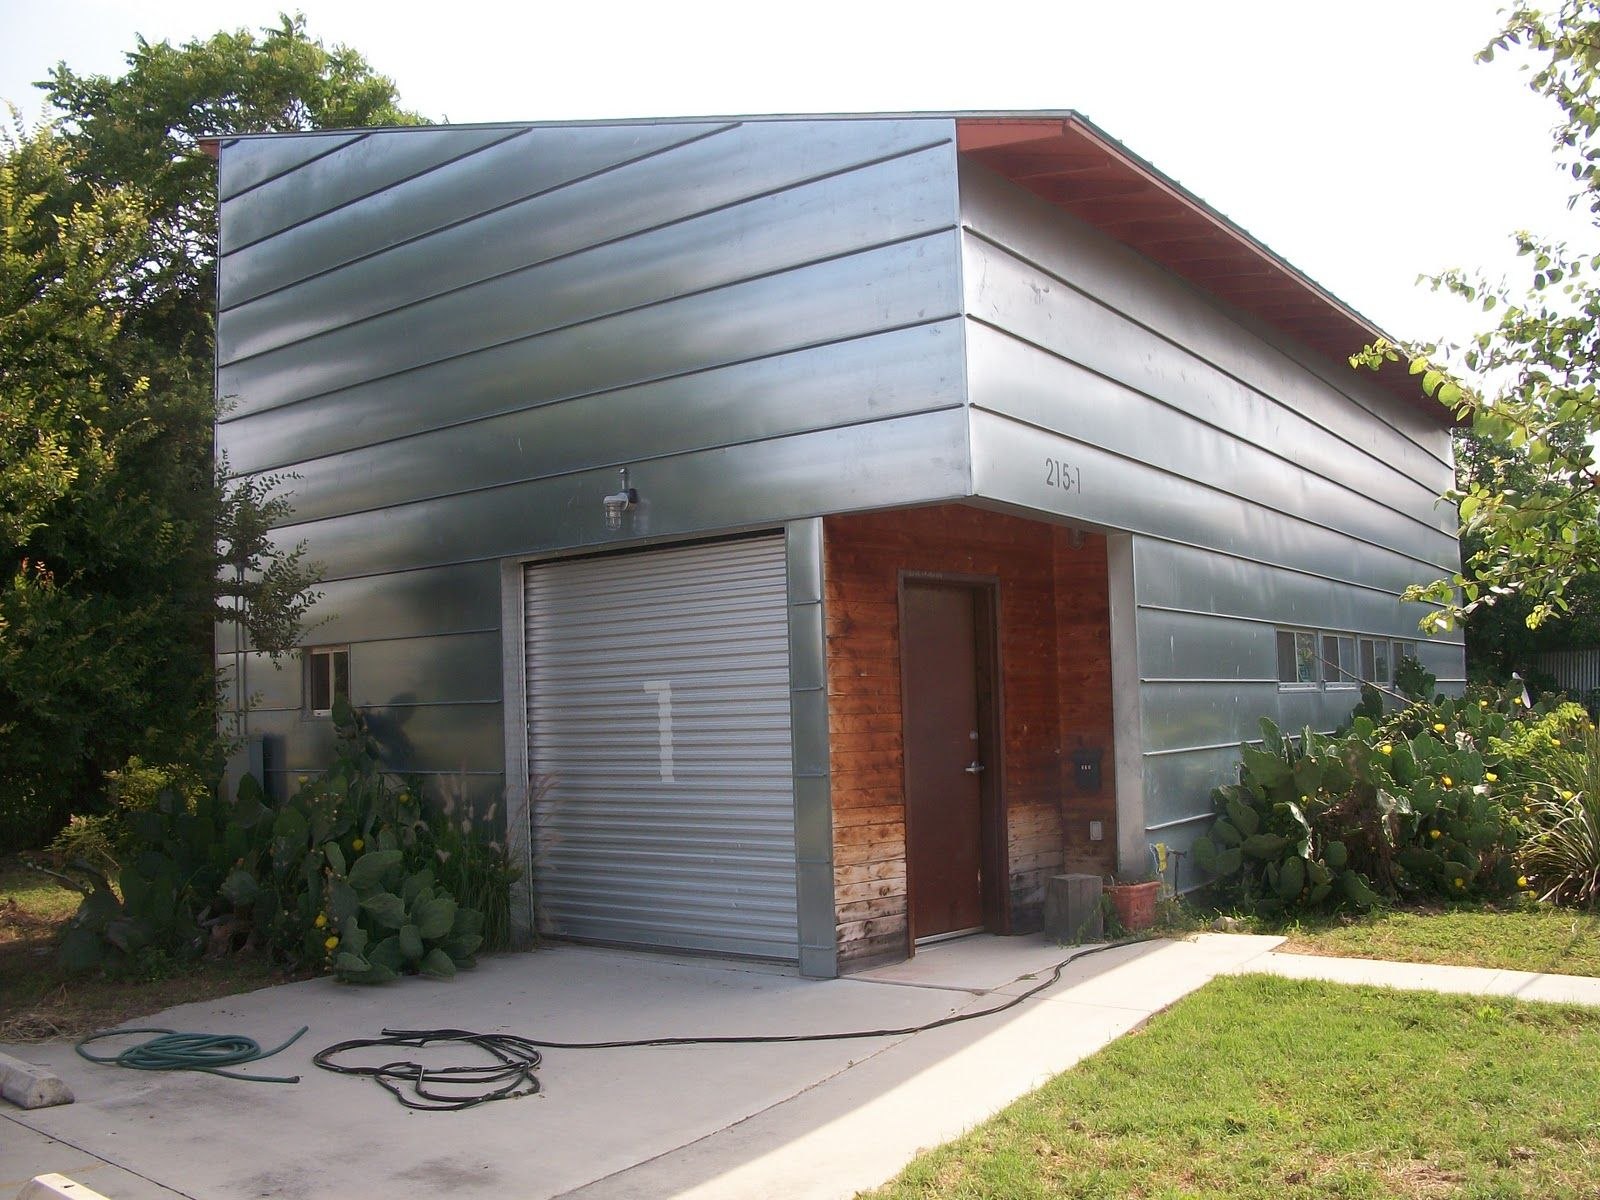 People And Architecture 8 1 10 House Siding Options Siding Options Corrugated Metal Siding